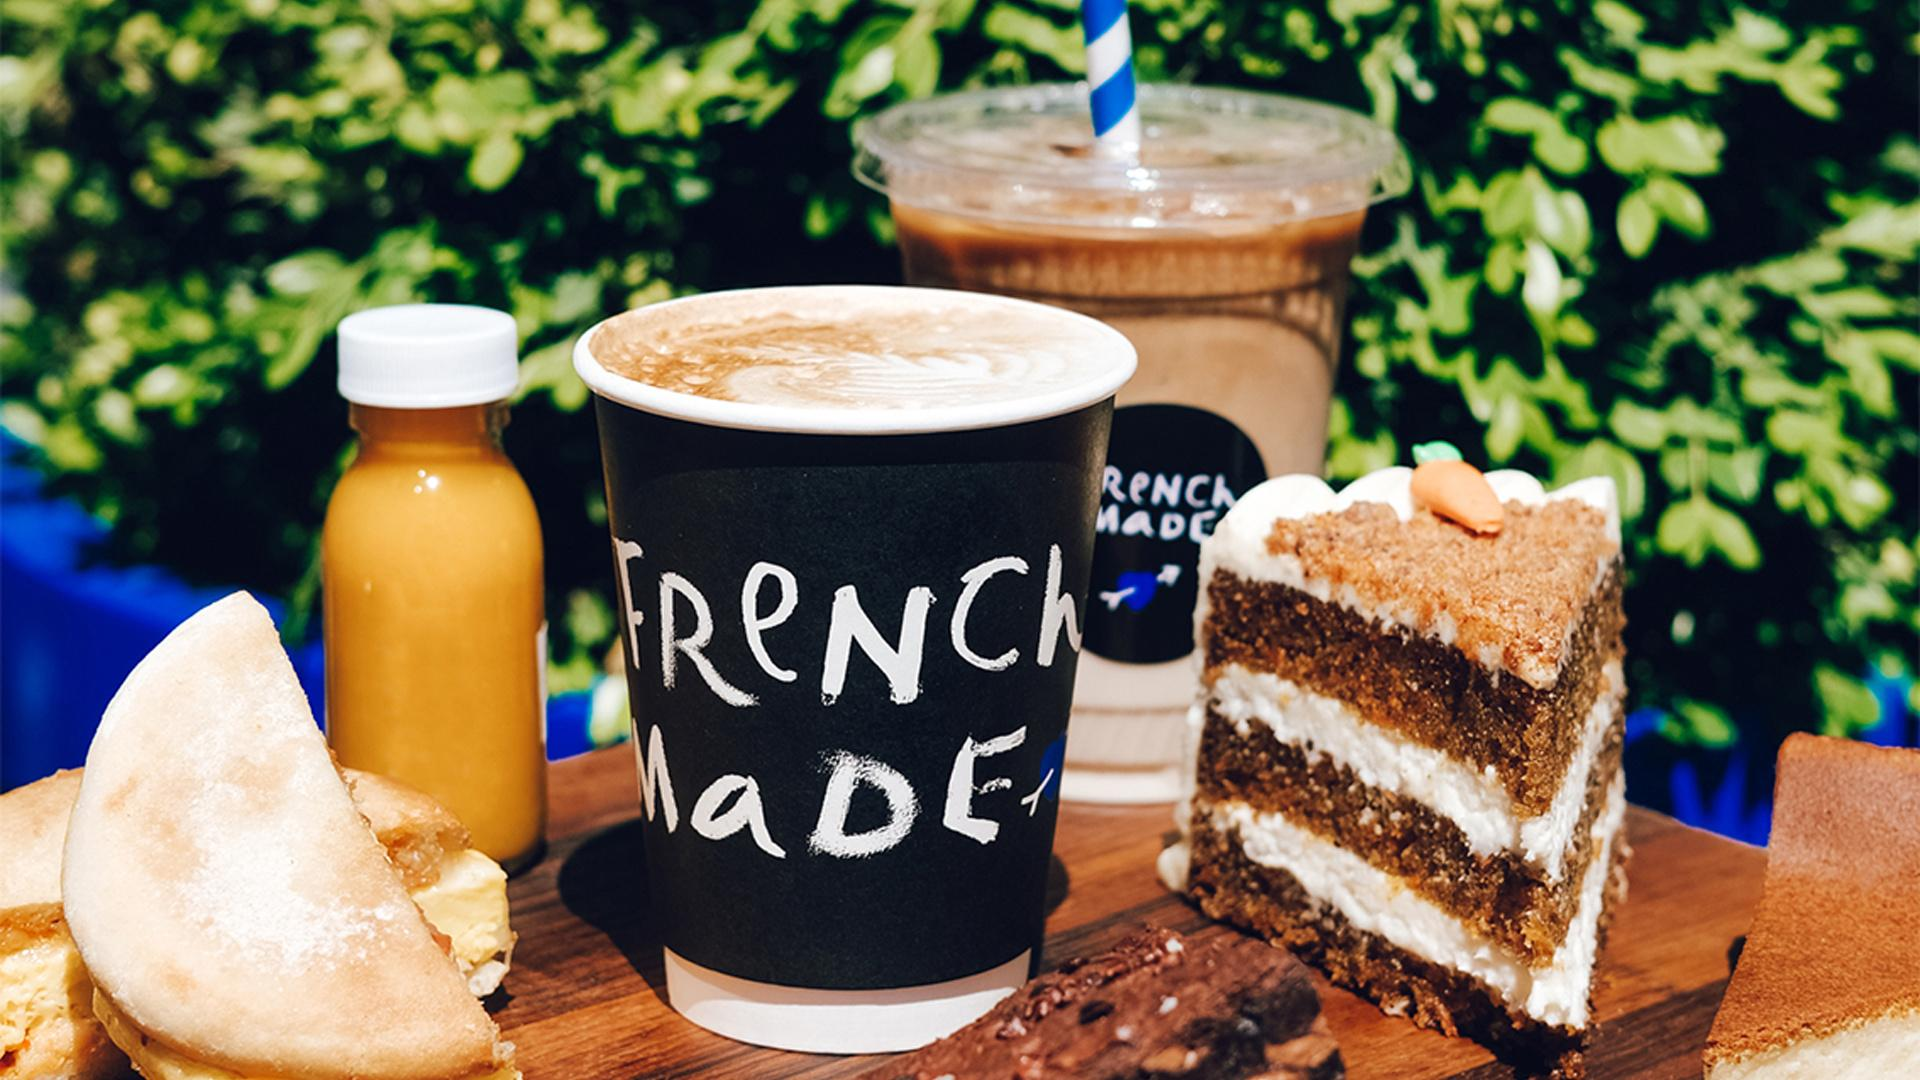 The best restaurants offering delivery and takeout in Toronto | coffee, cake and fresh juice at French Made